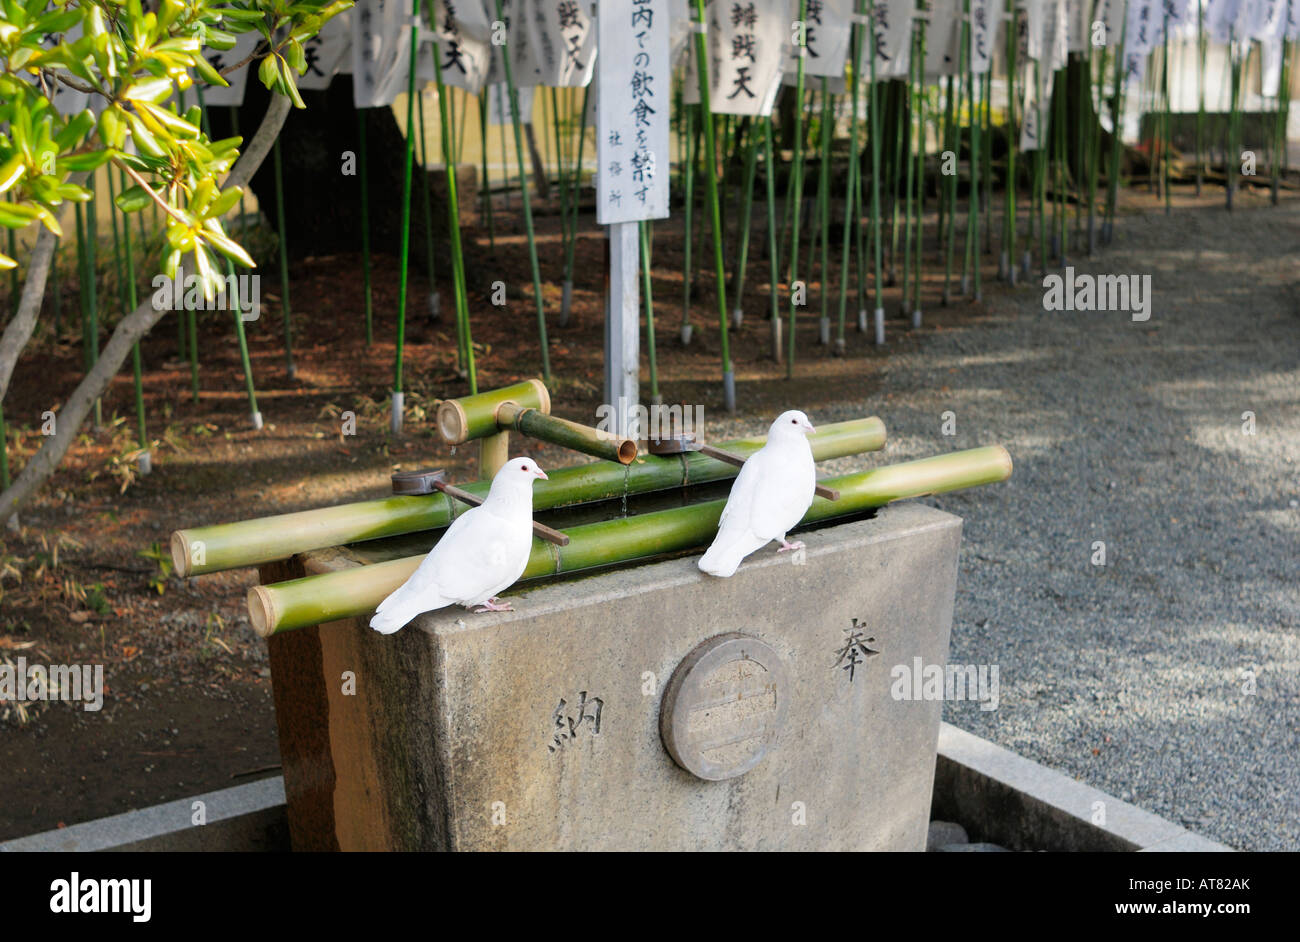 Two White Pigeons sitting on Purification Fountain - Stock Image